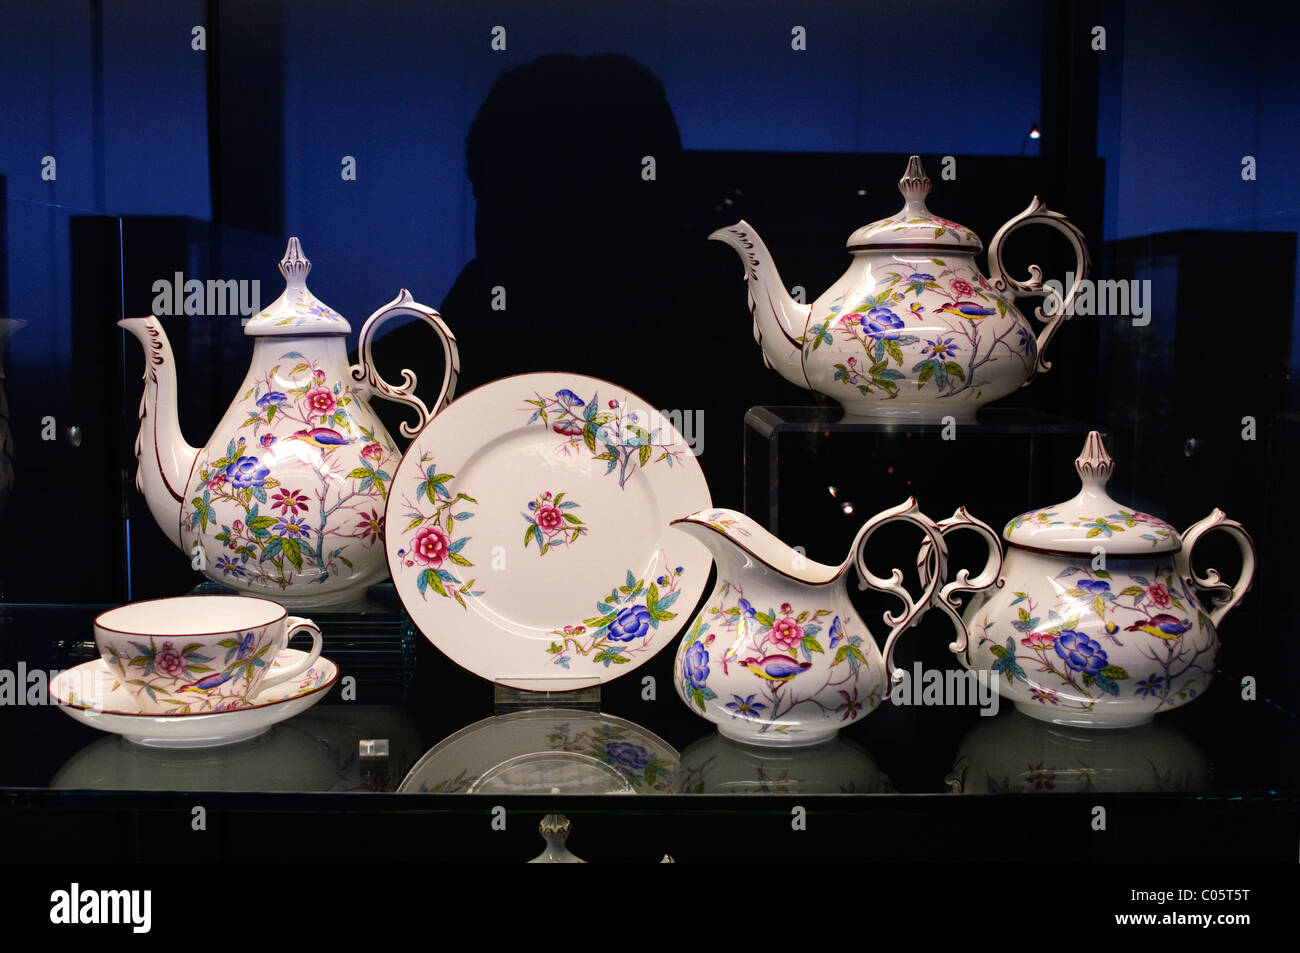 villeroy boch bone china tea service dating from the 1850 1865 stock photo royalty free image. Black Bedroom Furniture Sets. Home Design Ideas